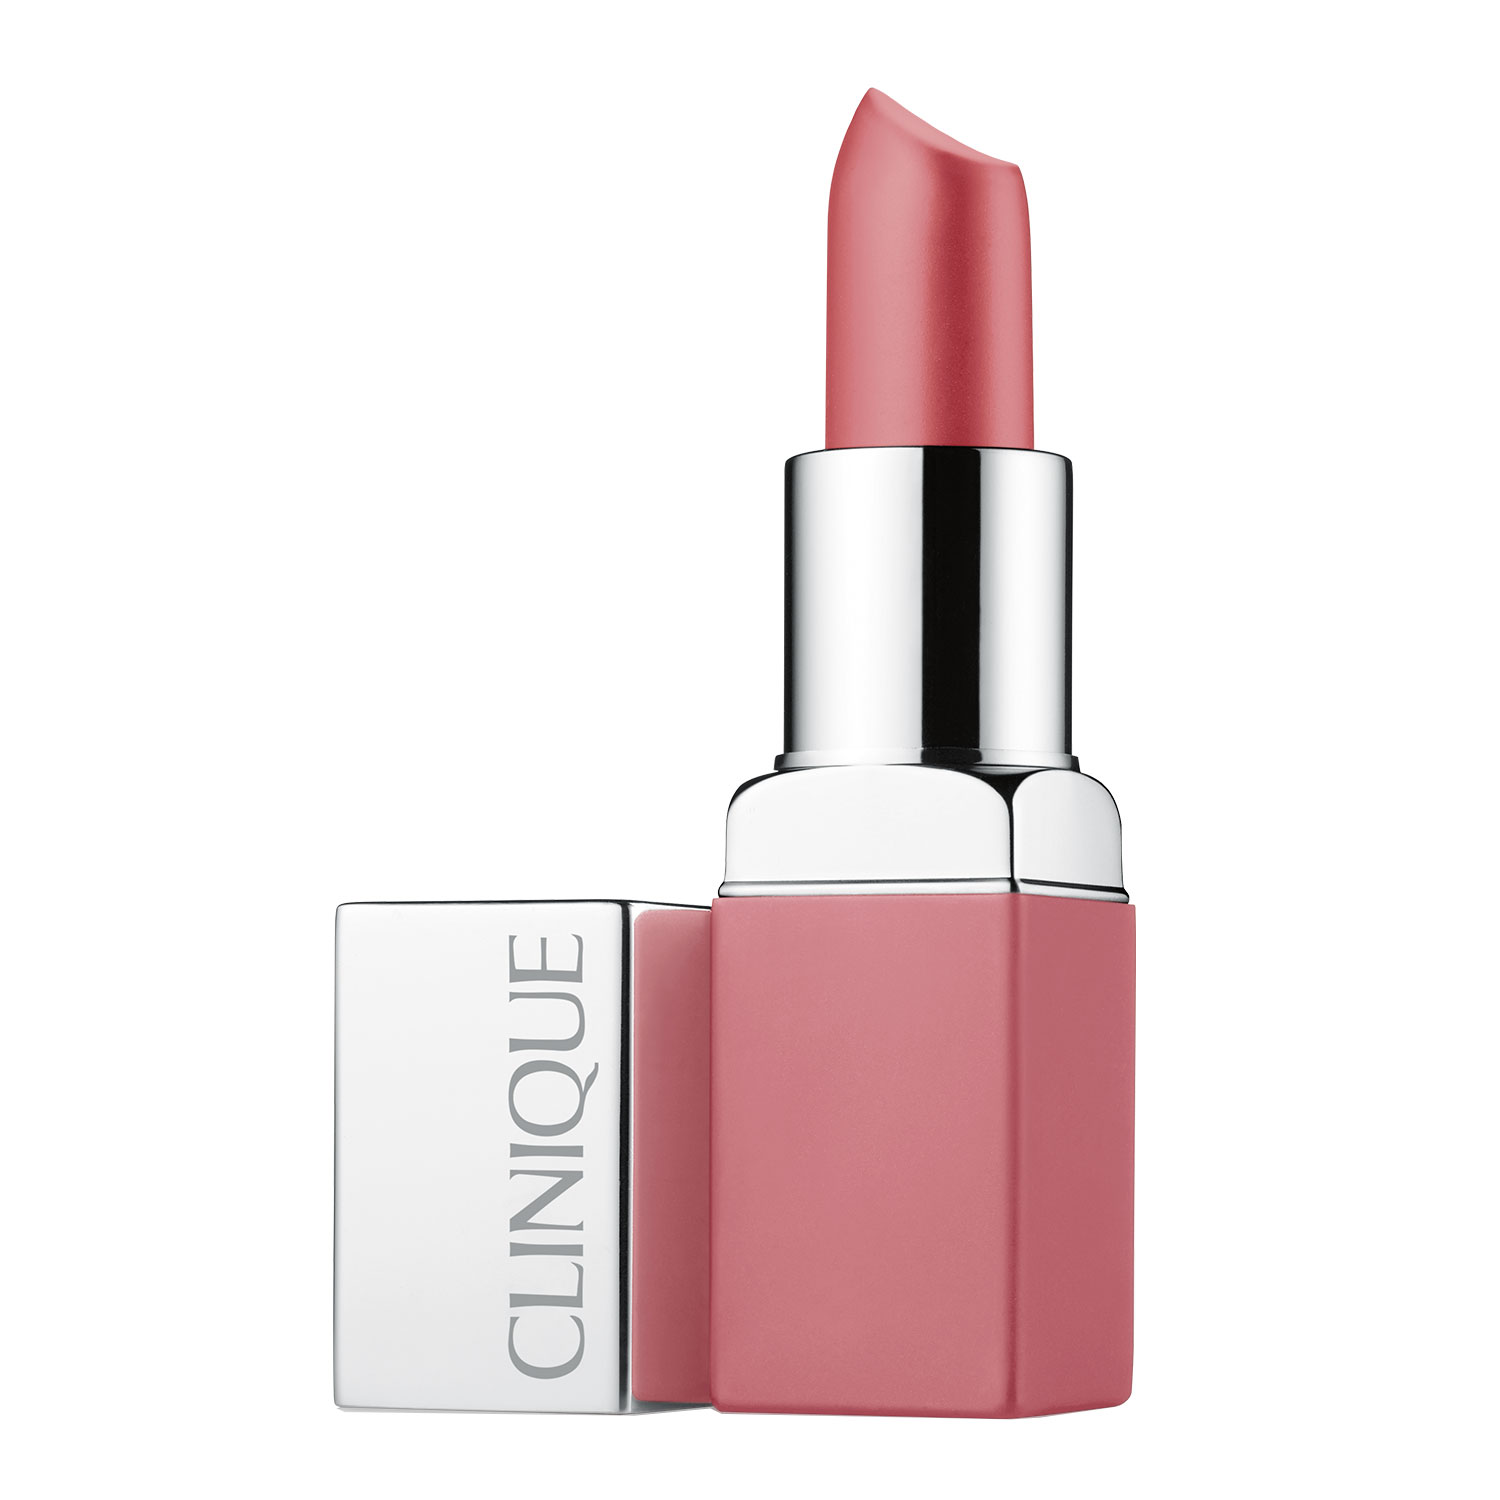 Clinique Pop - 13 Peony Pop